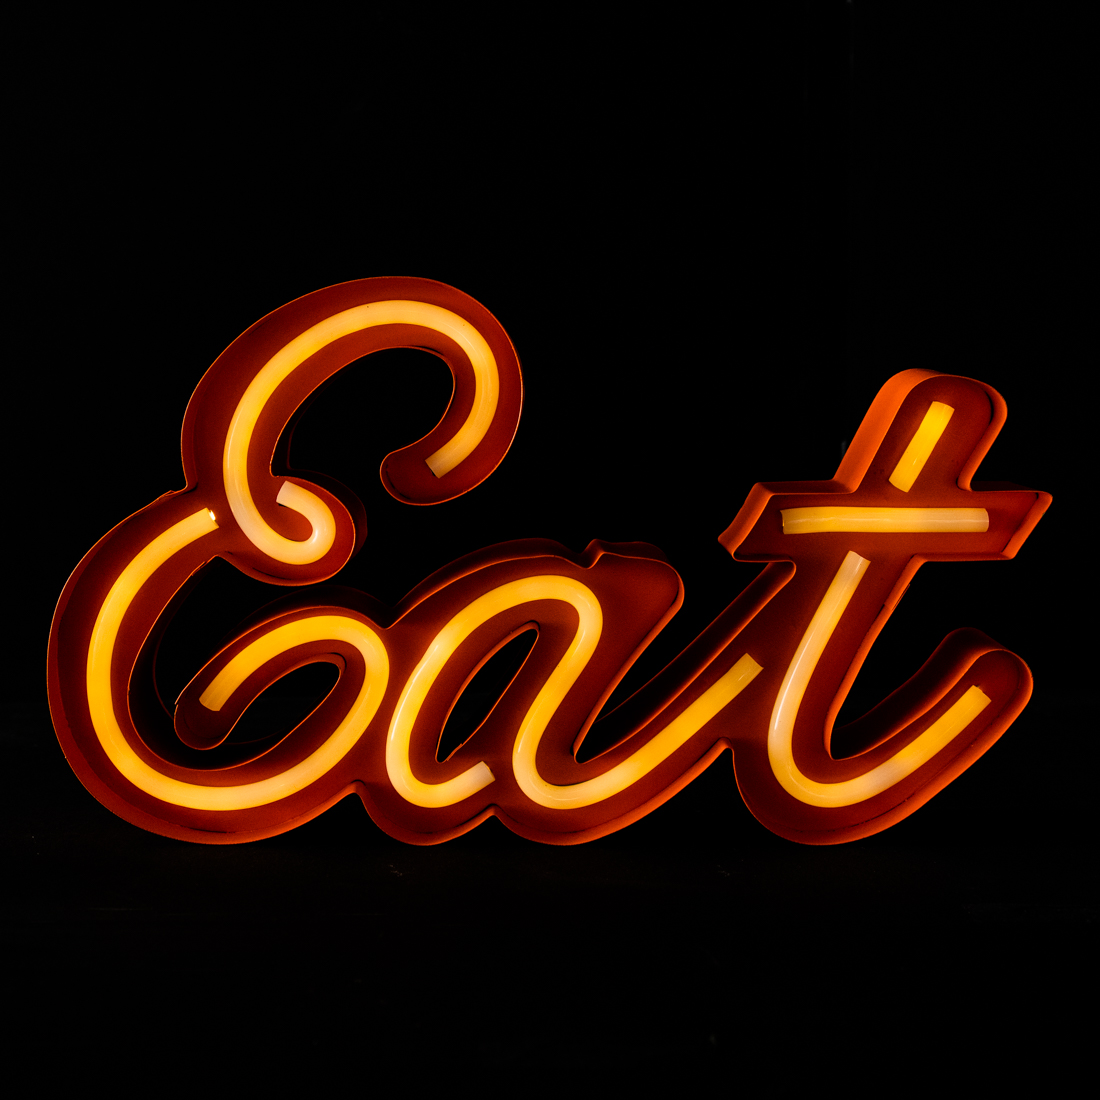 LED Eat Sign